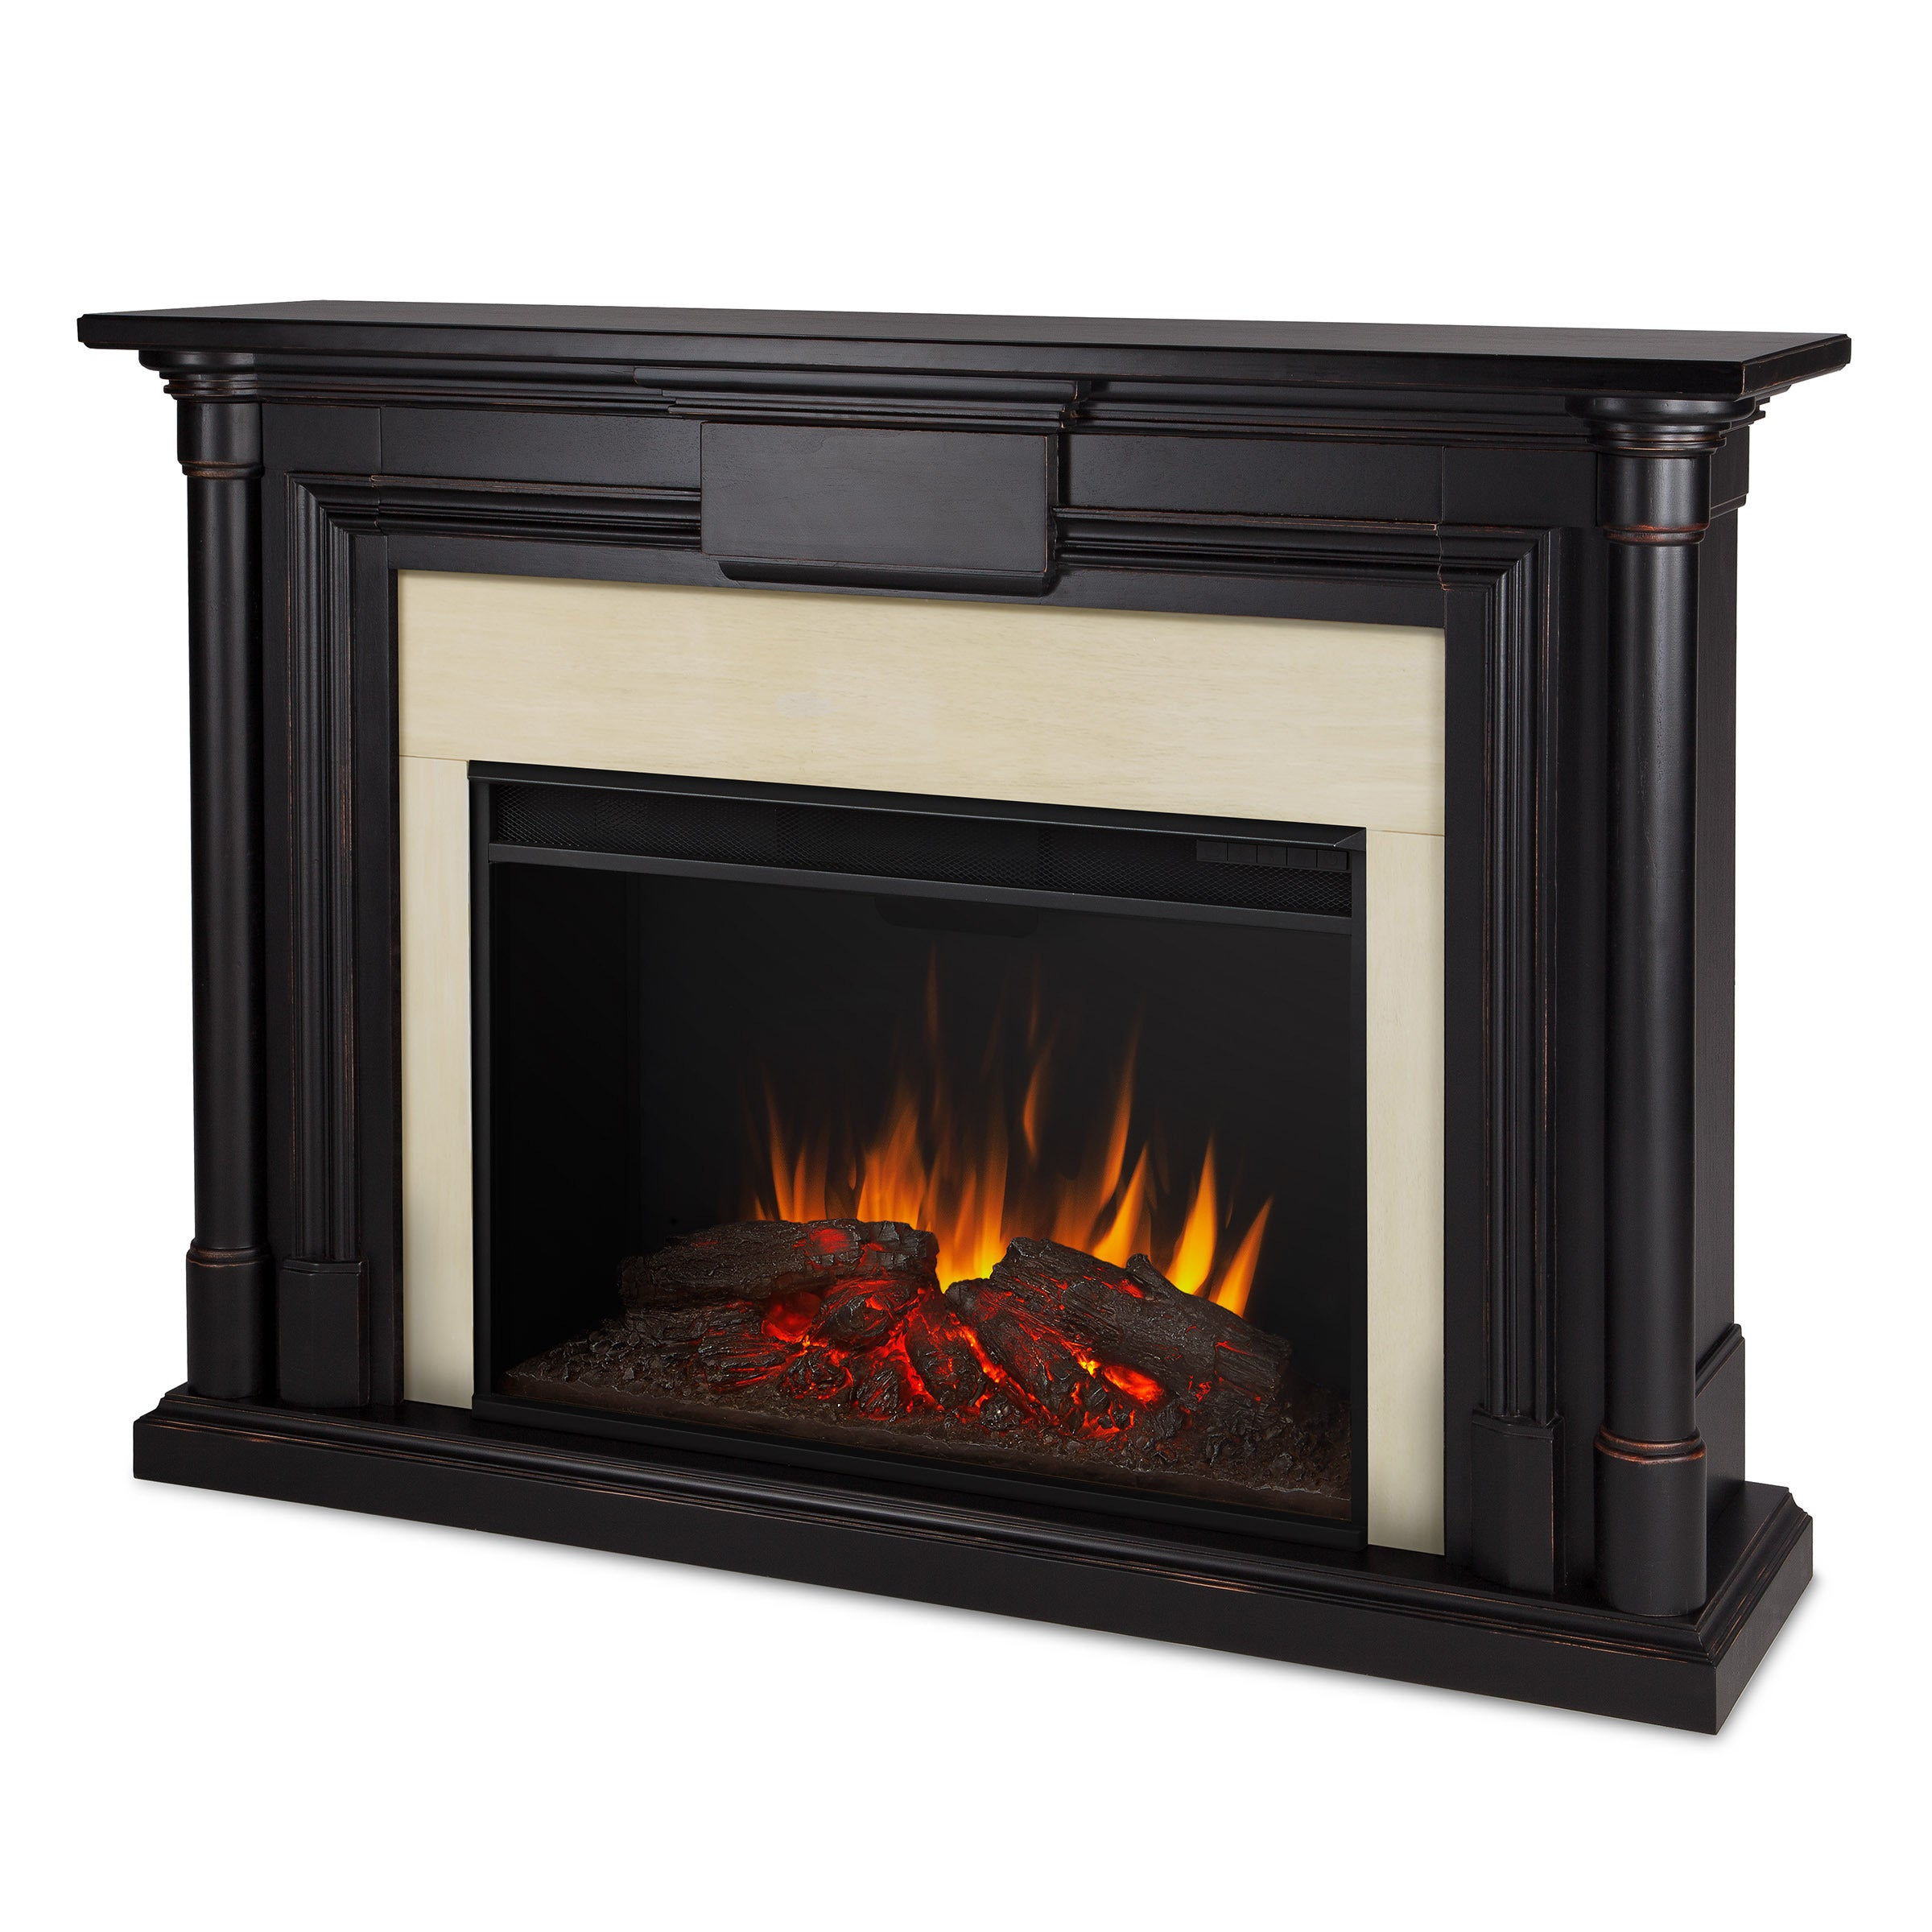 chelsea stand standing fireplaces black sale big corner fireplace dimplex lots bl info electric